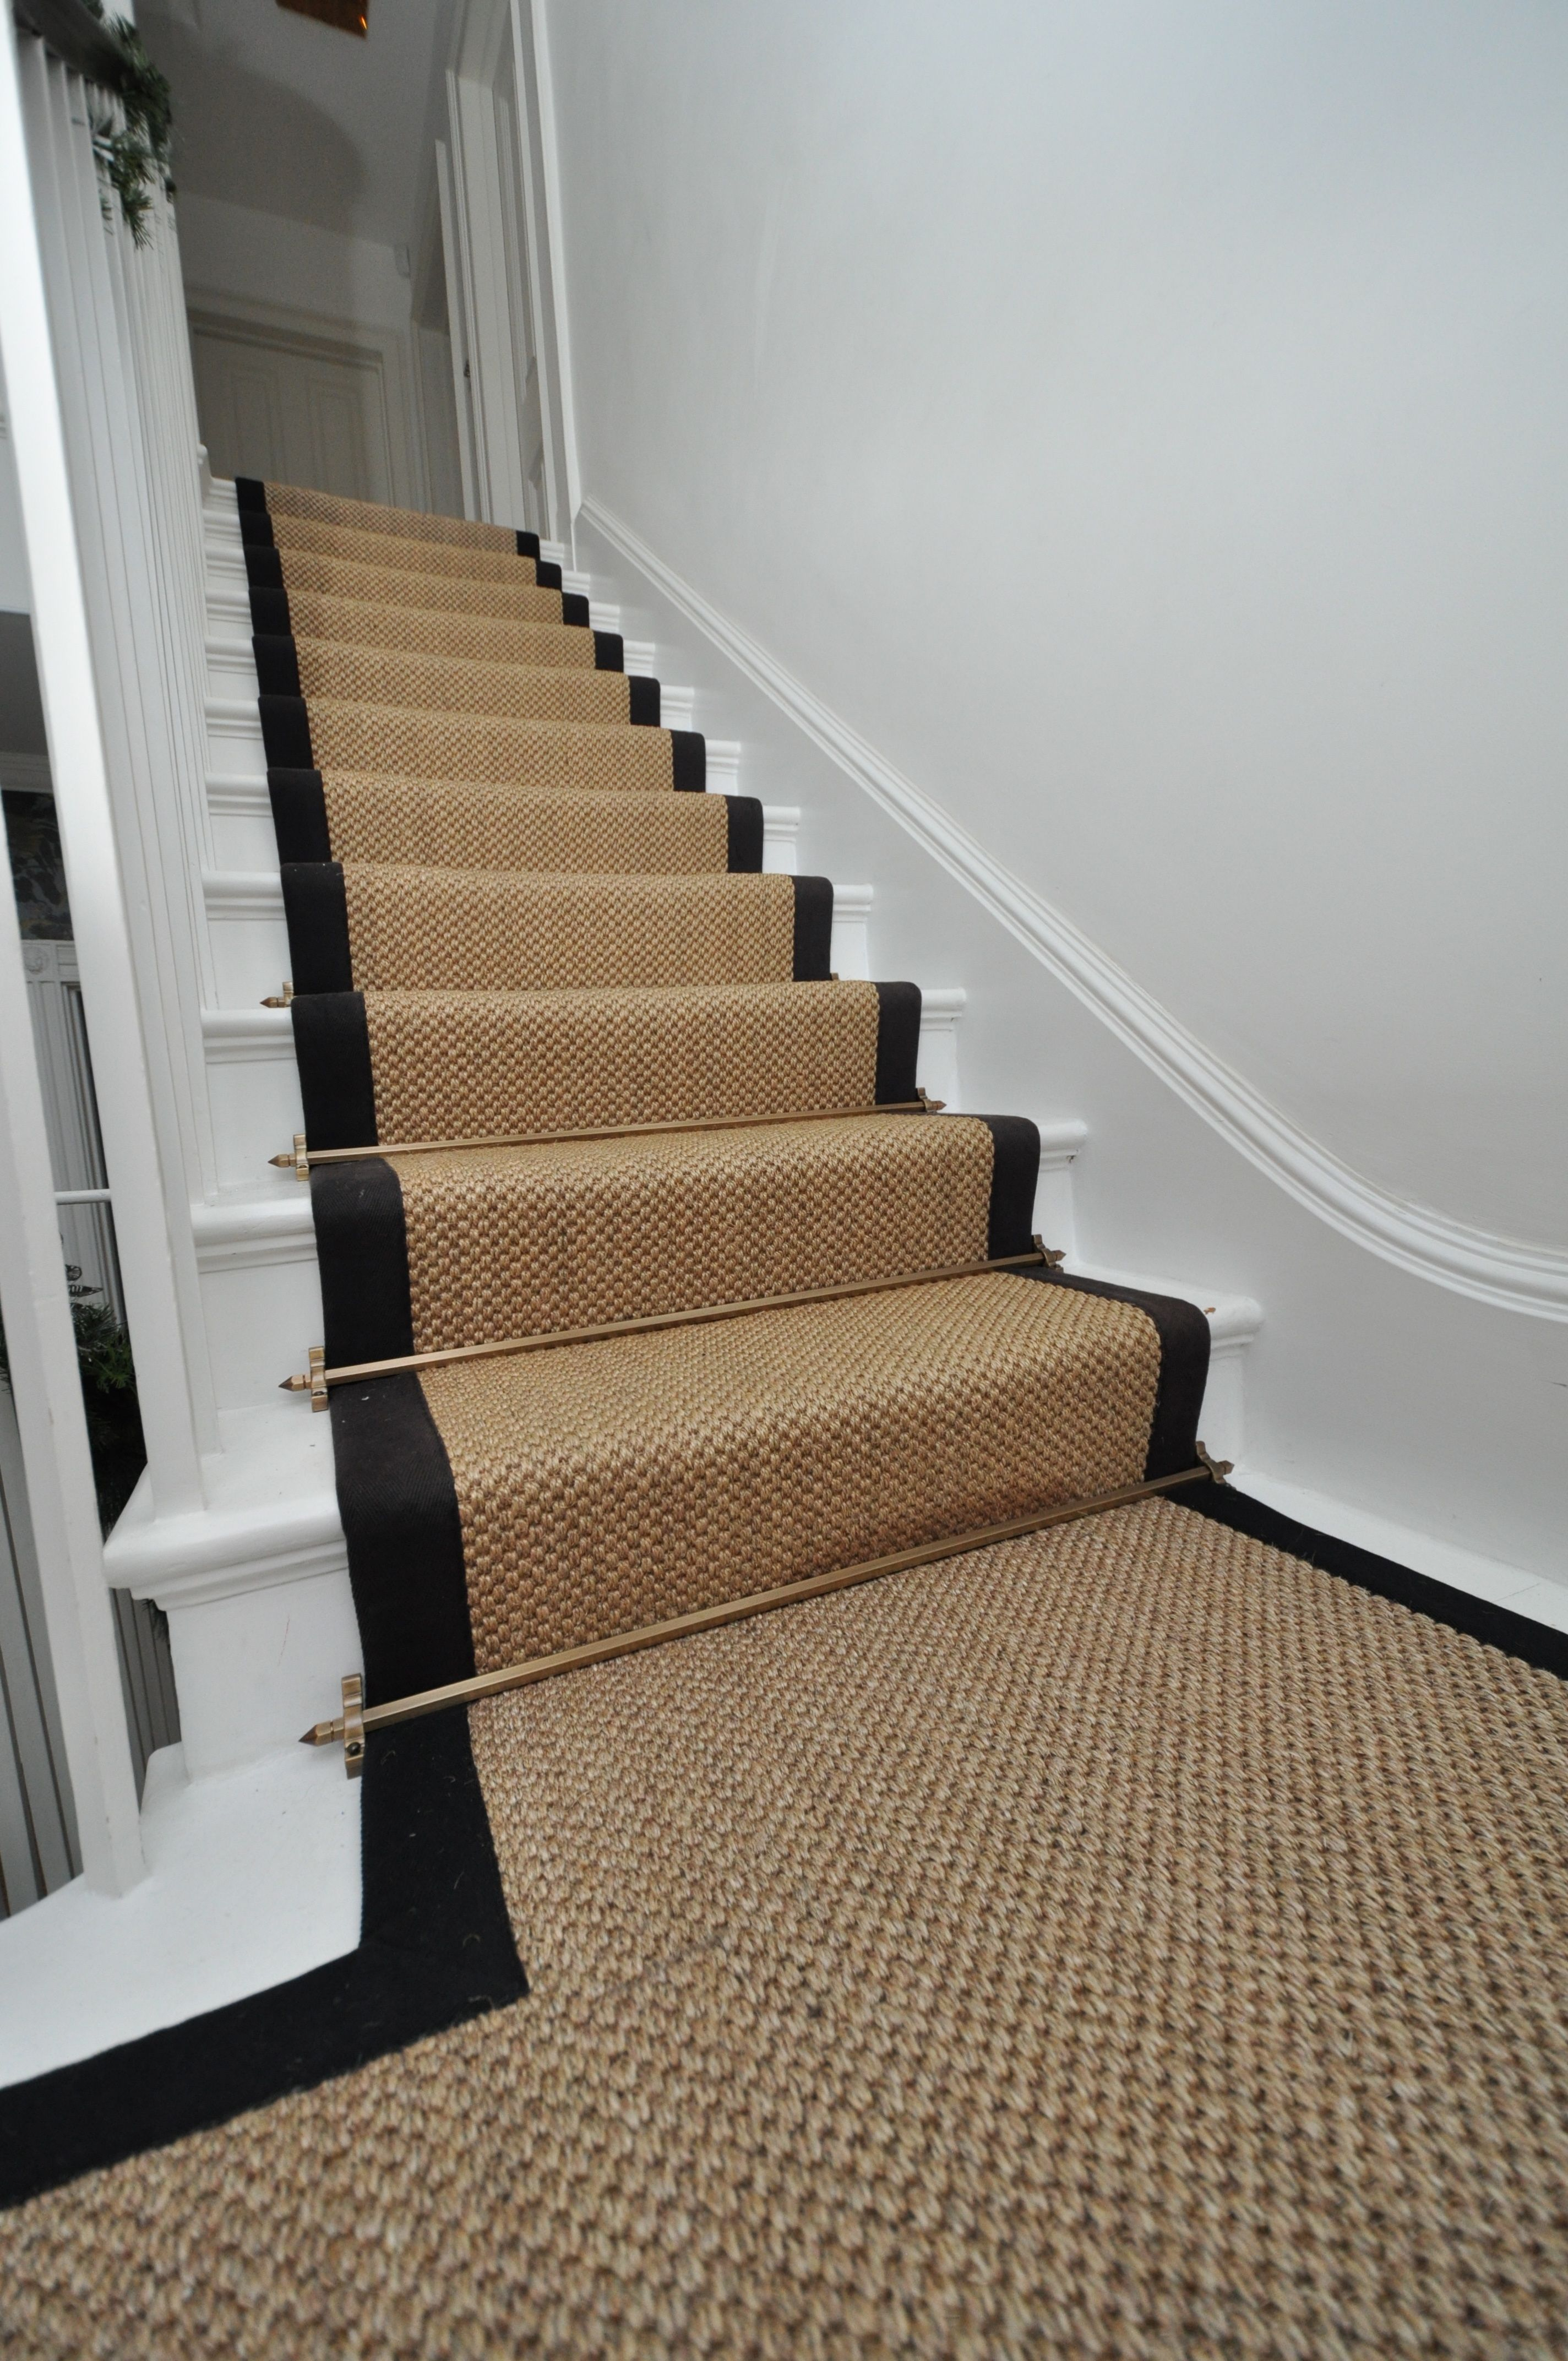 4 068 Sisal Stair Runners Bowloom Sisal Stair Runners With Binding